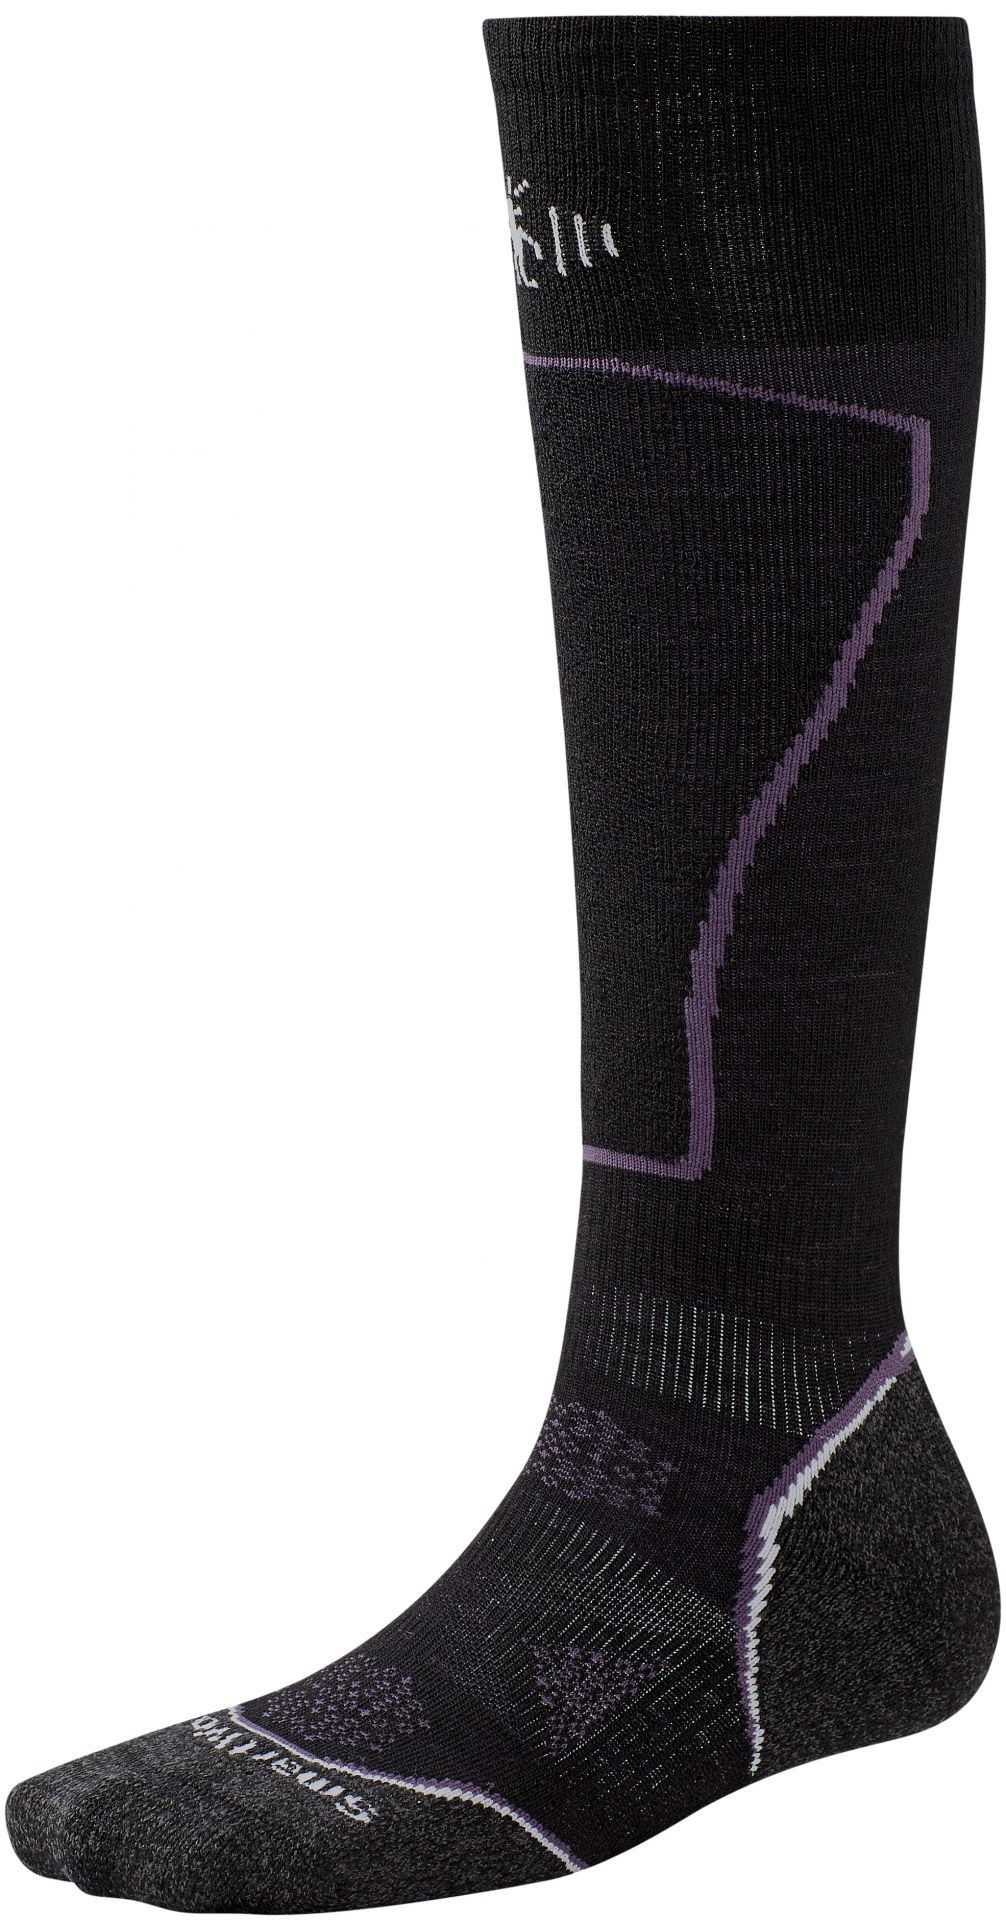 Smartwool Women's PhD Ski Light Socks - Black - Medium